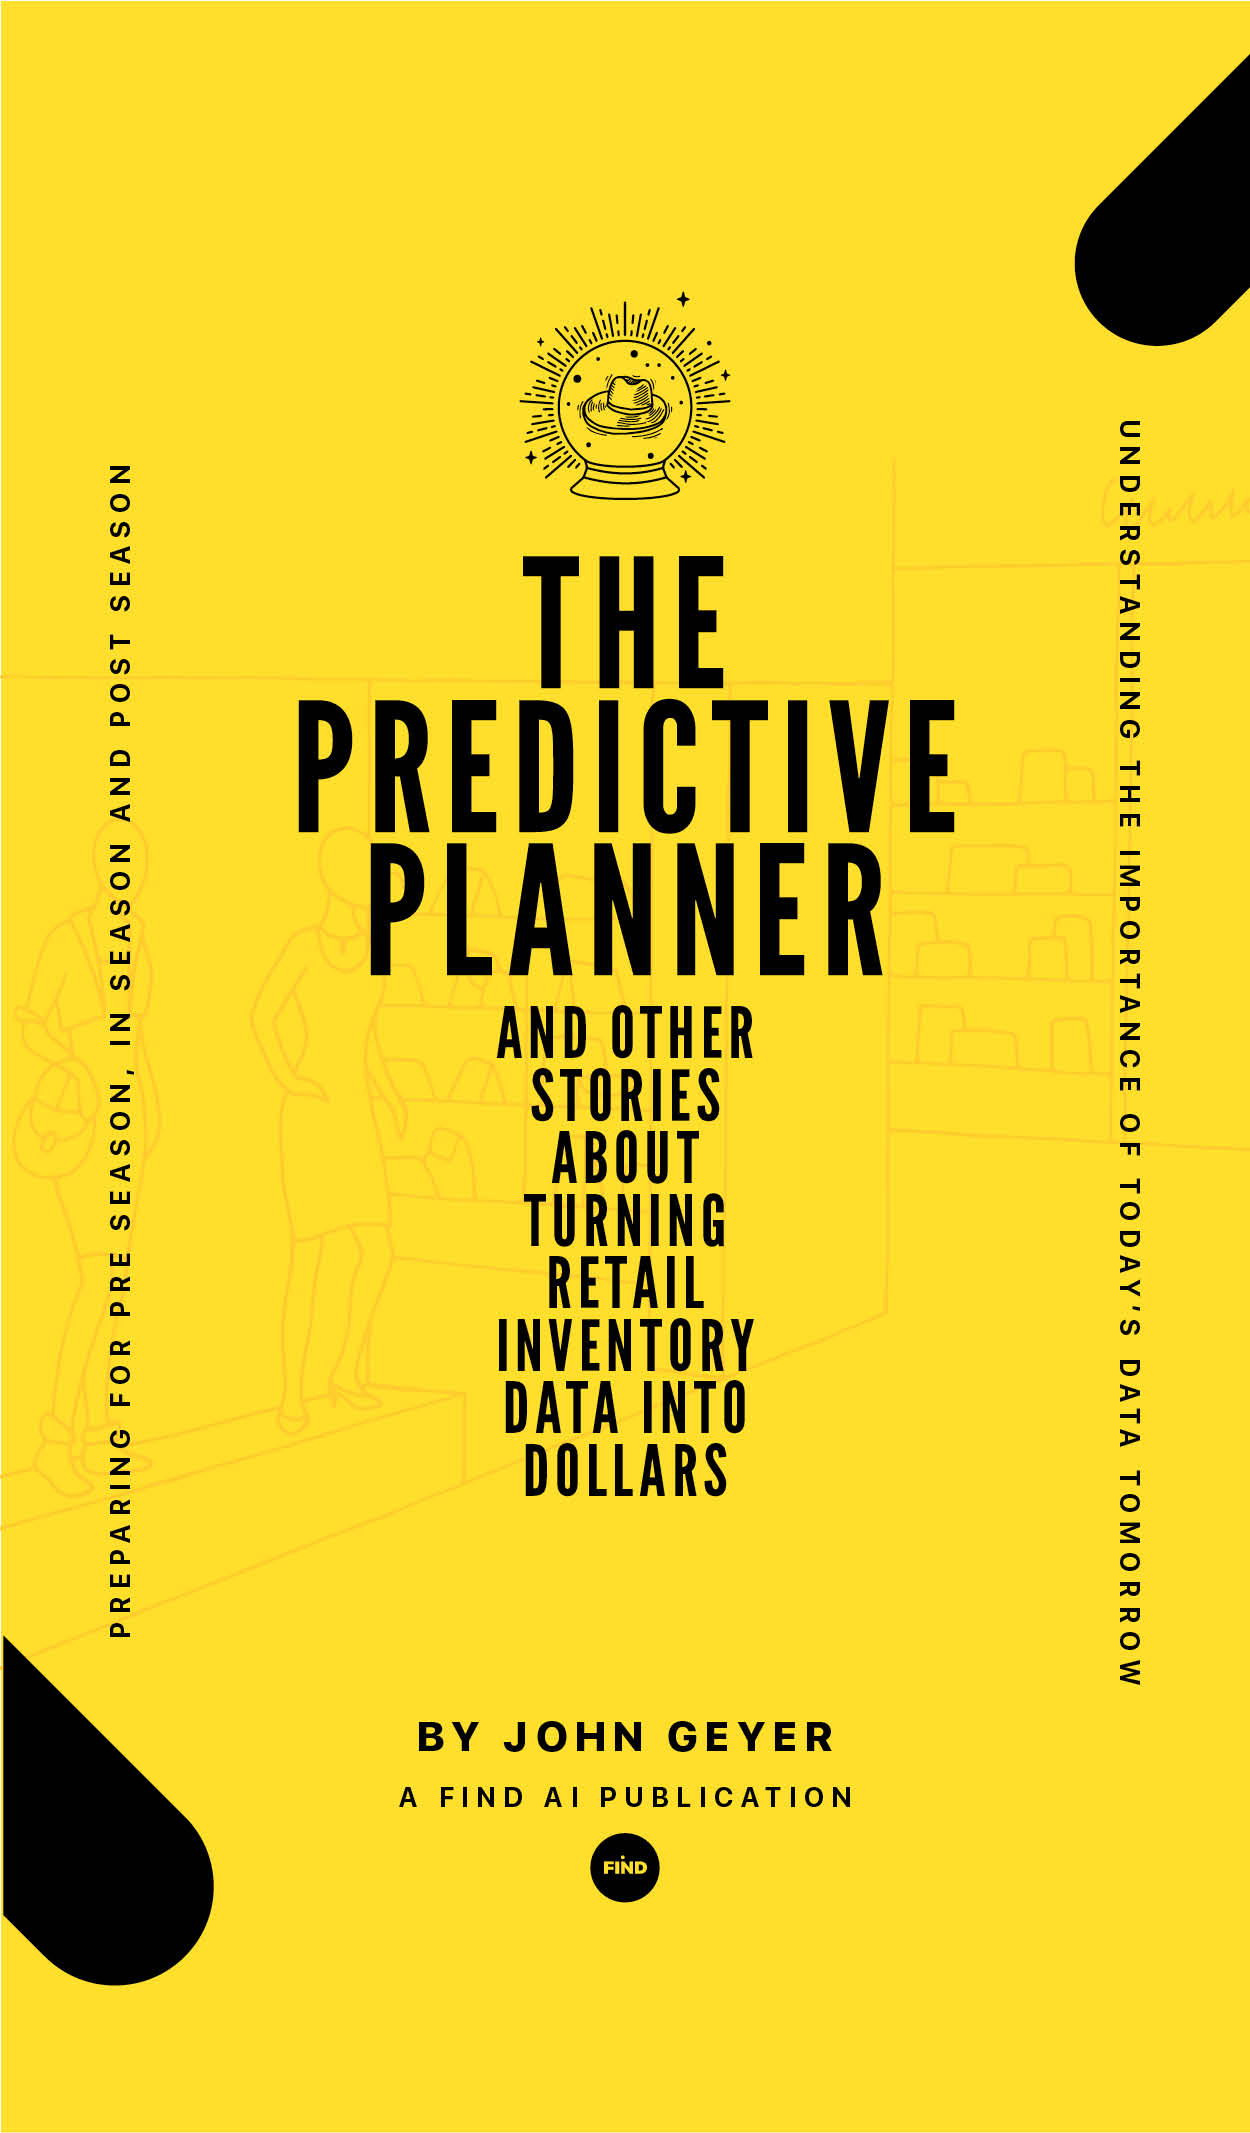 FIND AI Blog and Predictive Planner Resources